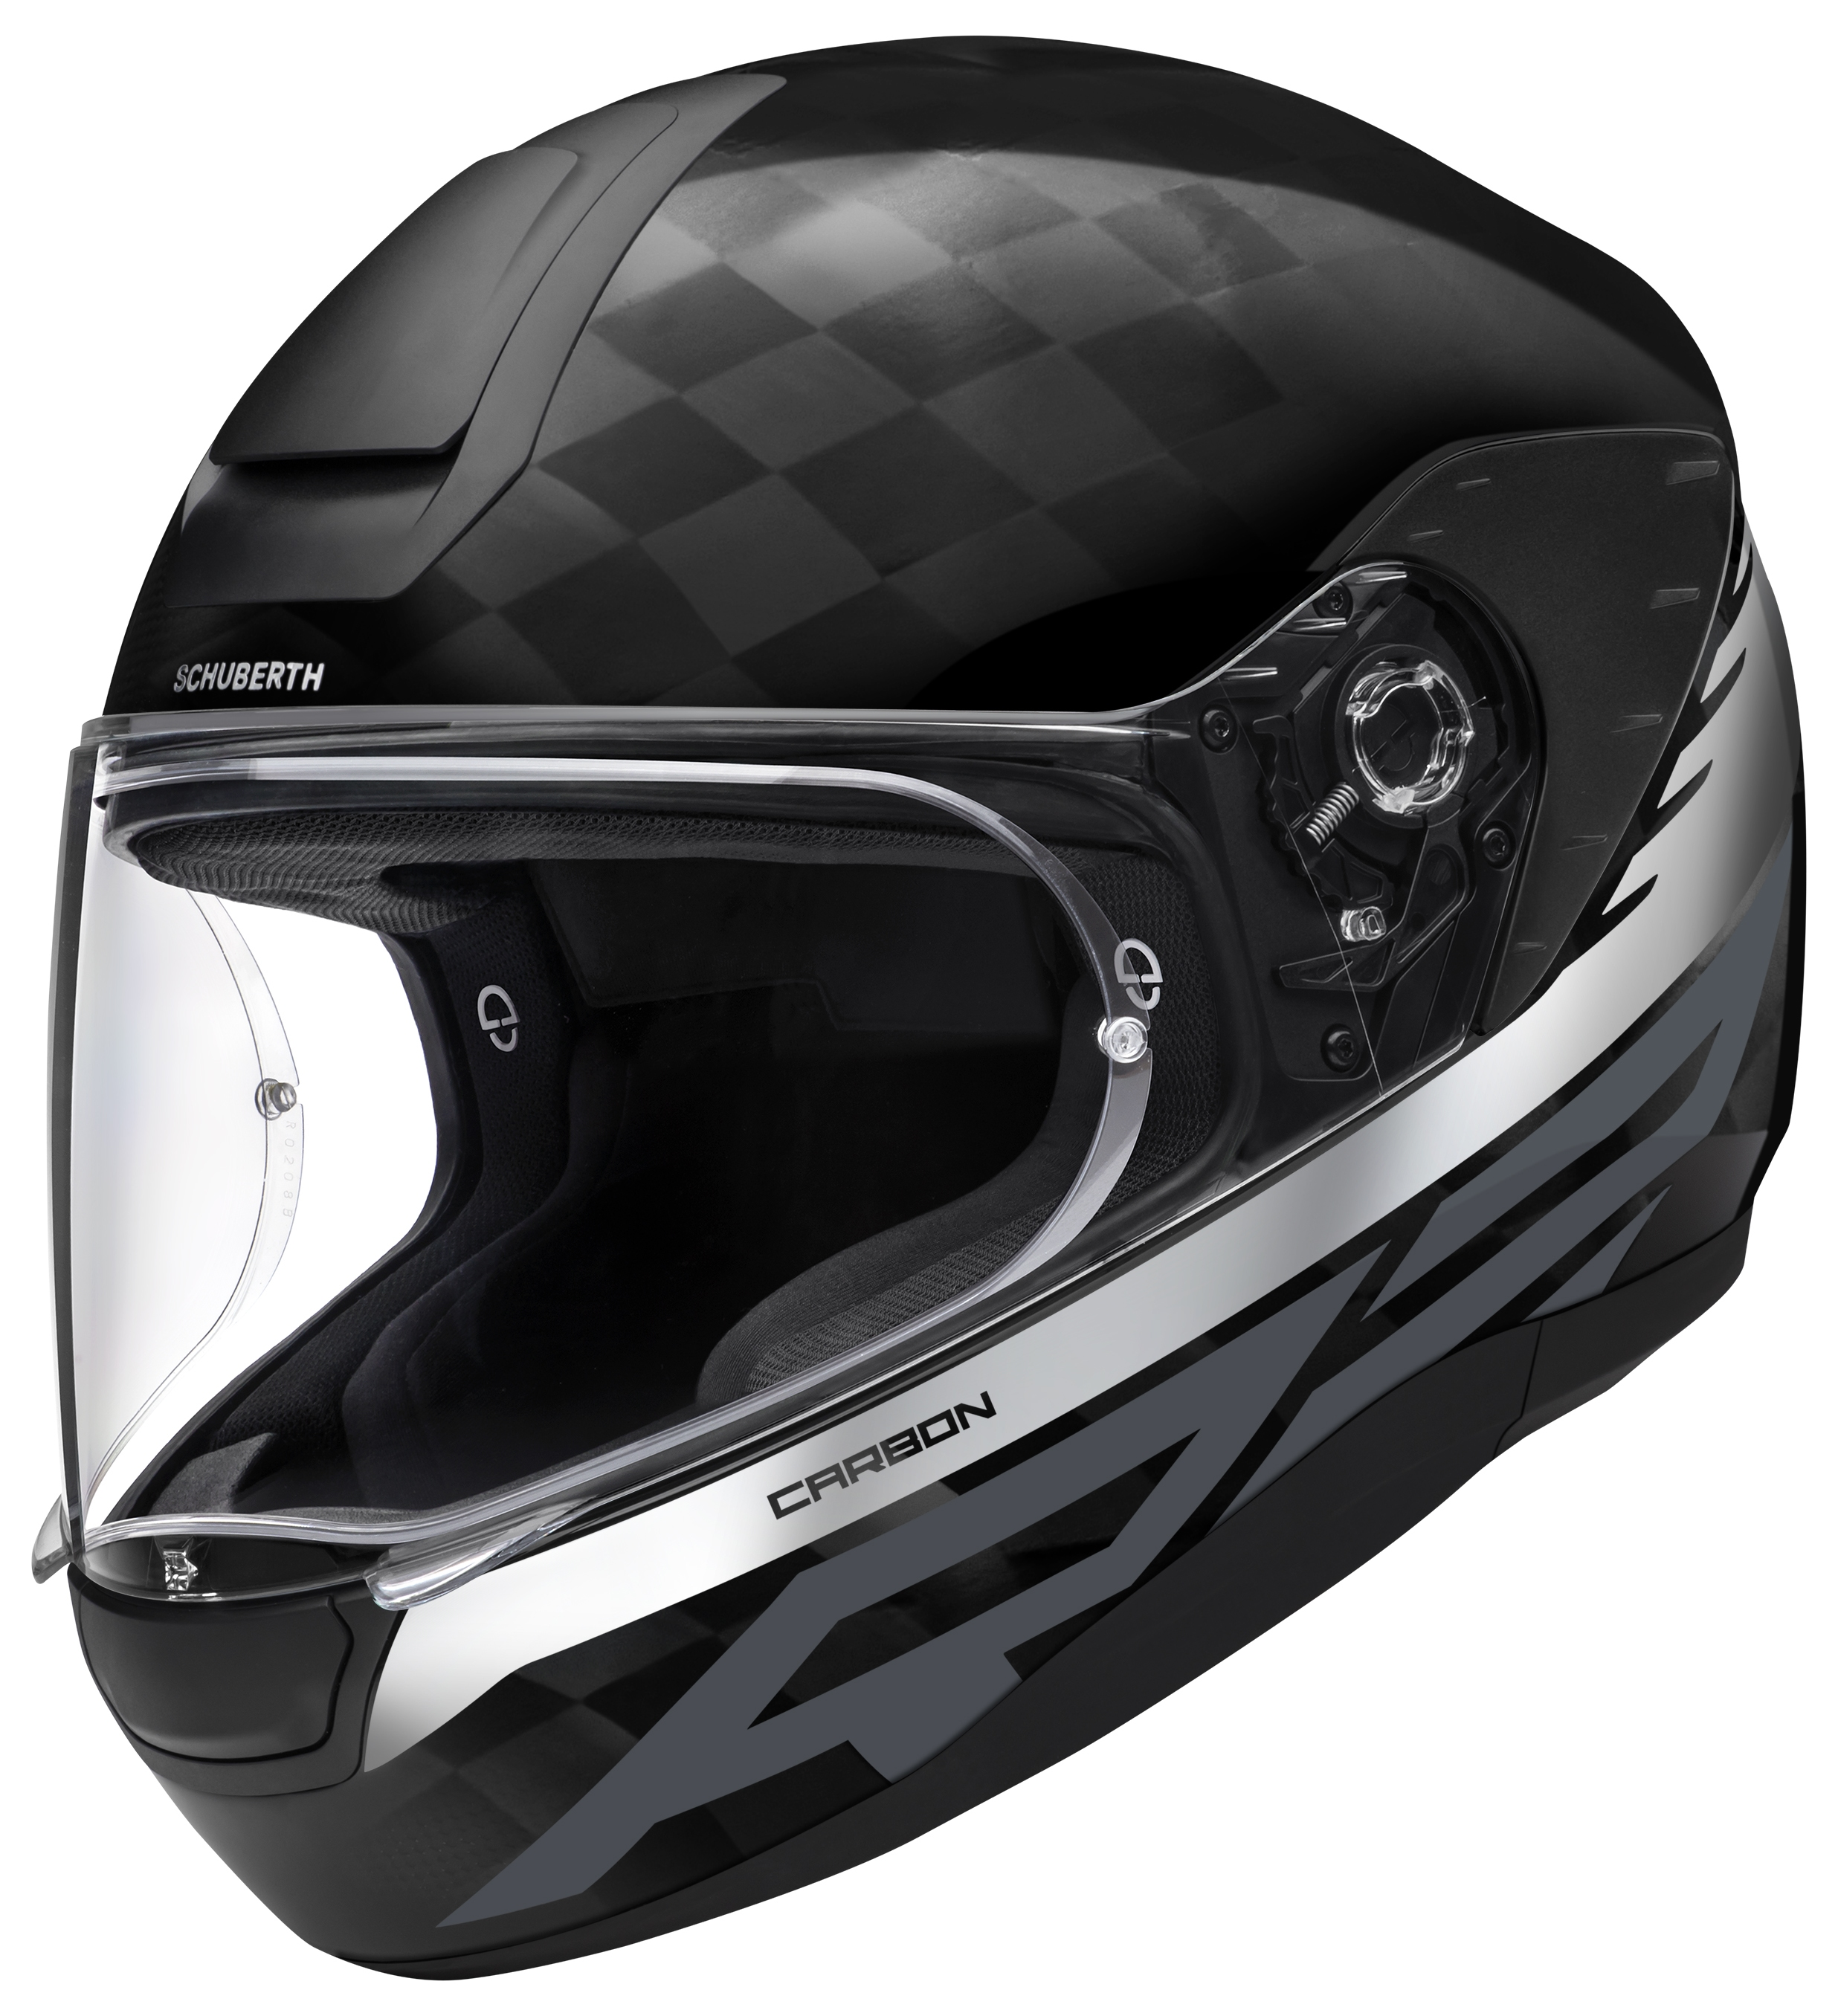 schuberth r2 carbon bold helmet cycle gear. Black Bedroom Furniture Sets. Home Design Ideas